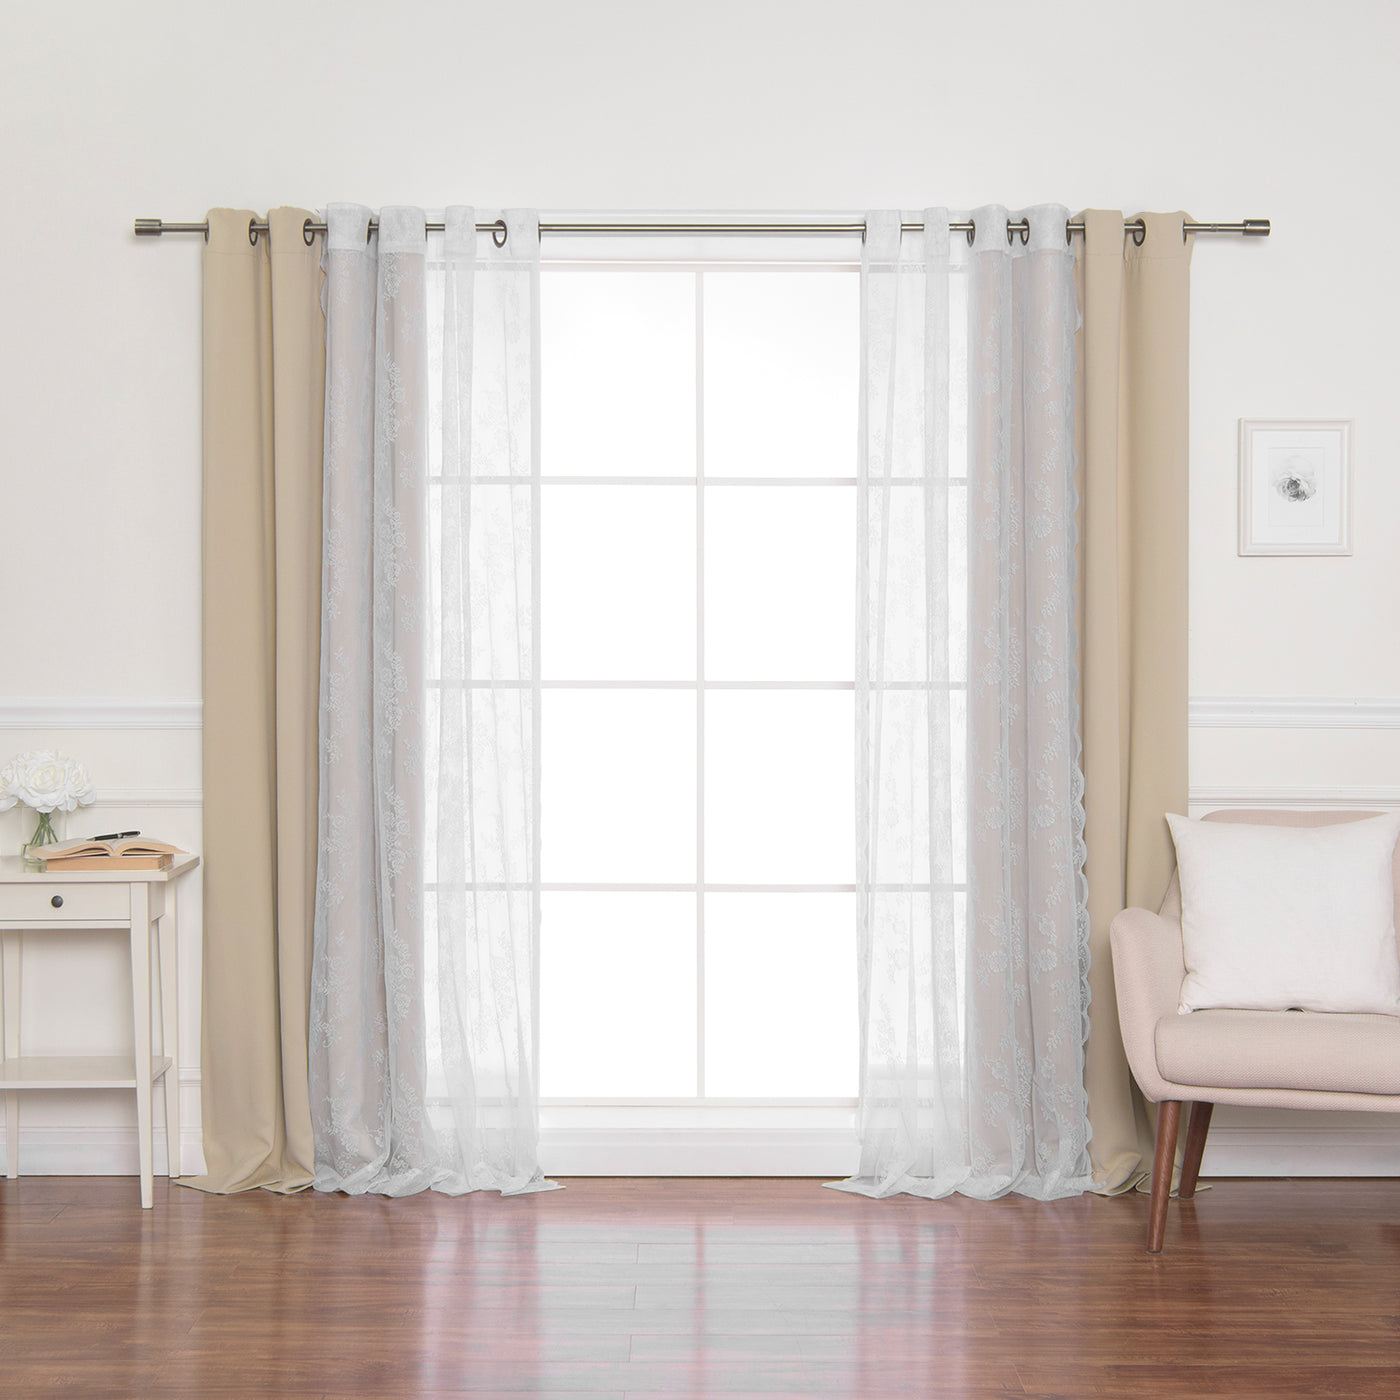 Rose Sheers & Blackout Curtains